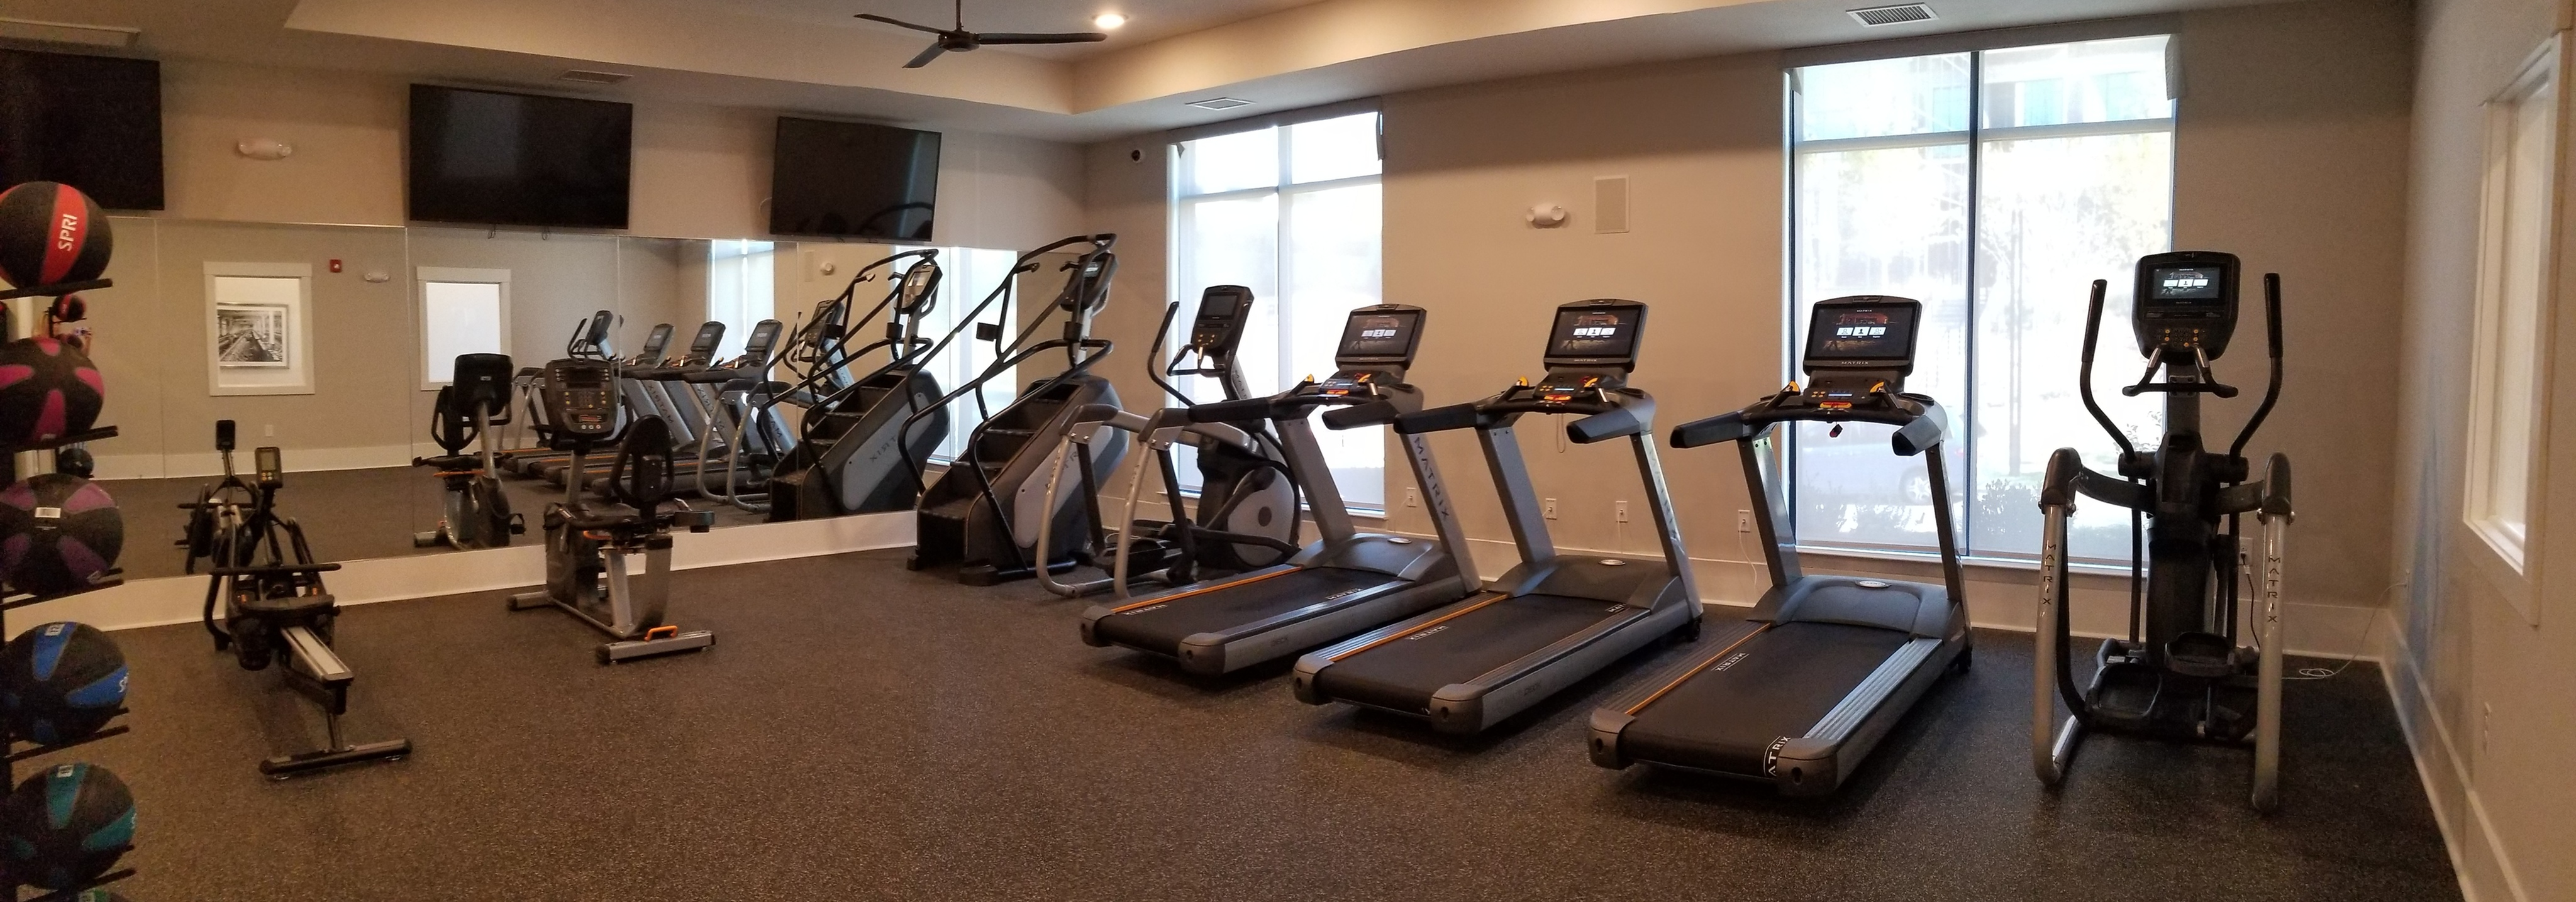 Community Fitness Center | Apartments In Fort Mill SC | Kingsley Apartments